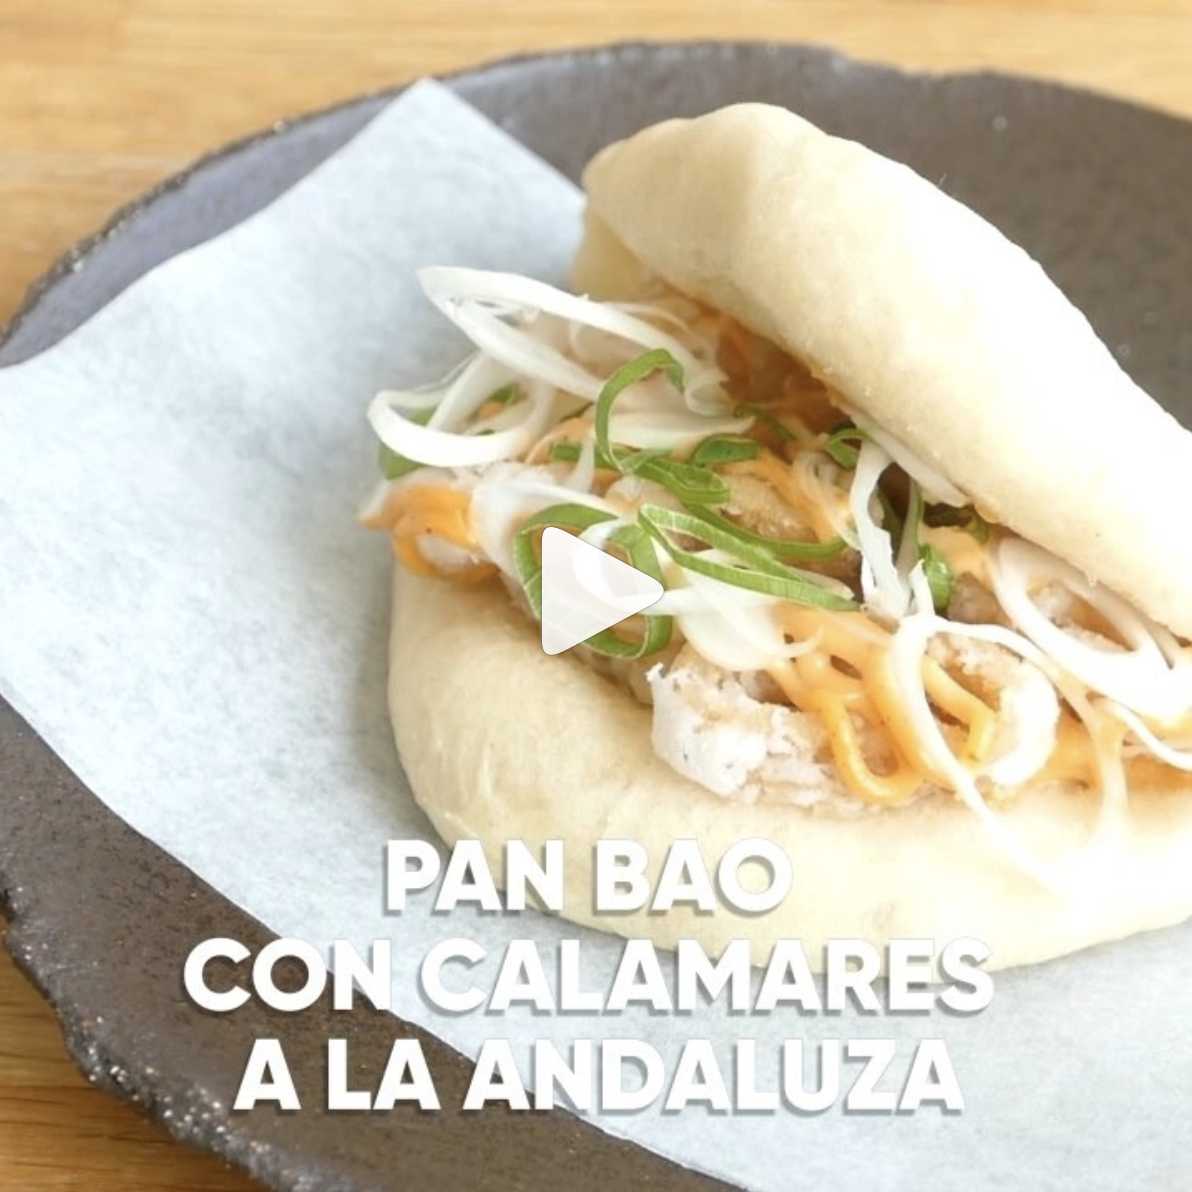 Bao de Calamares - This and That